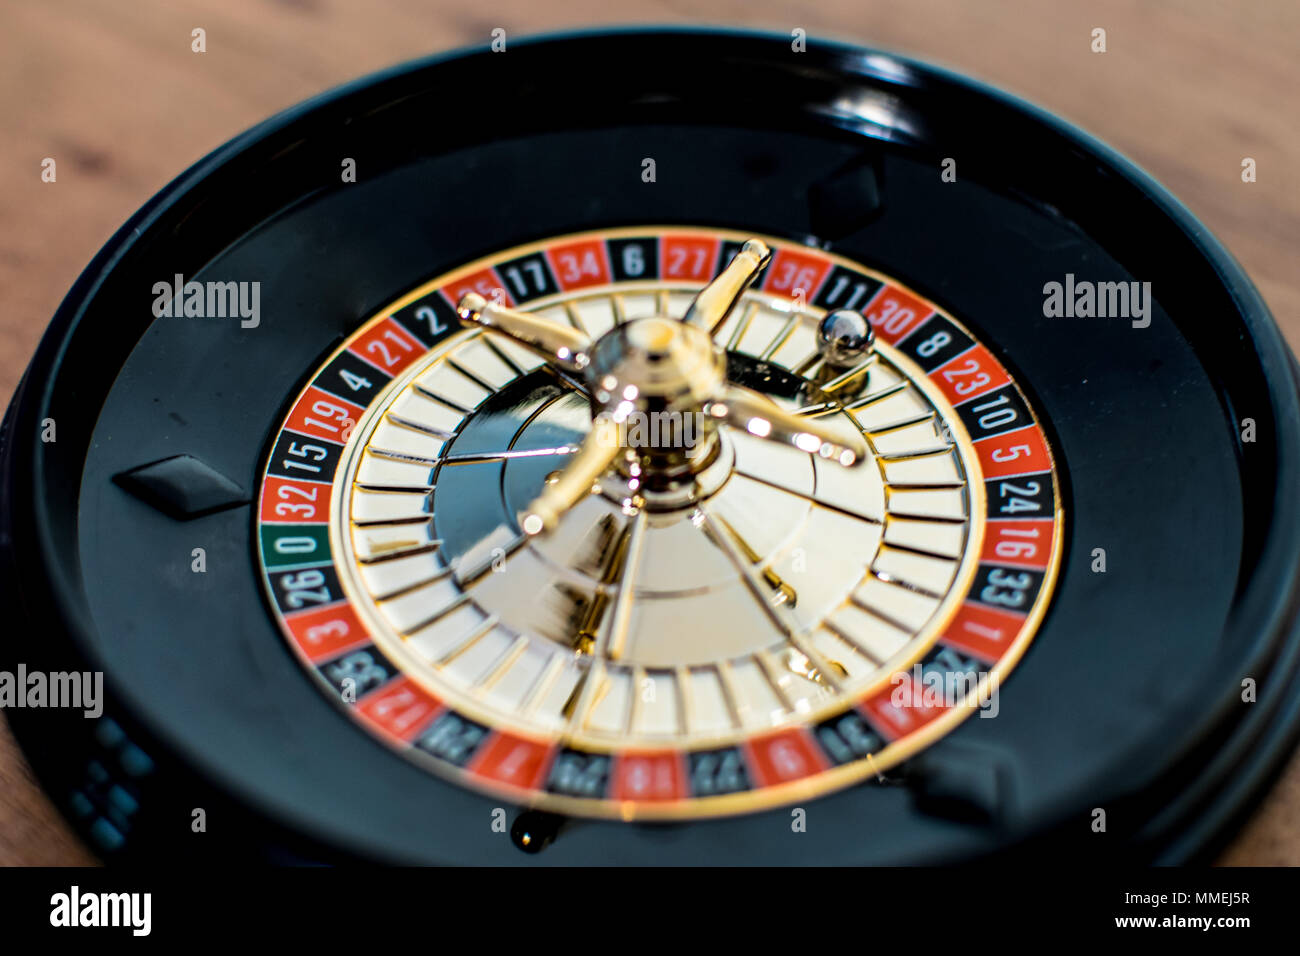 Close up of a casino roulette - Stock Image